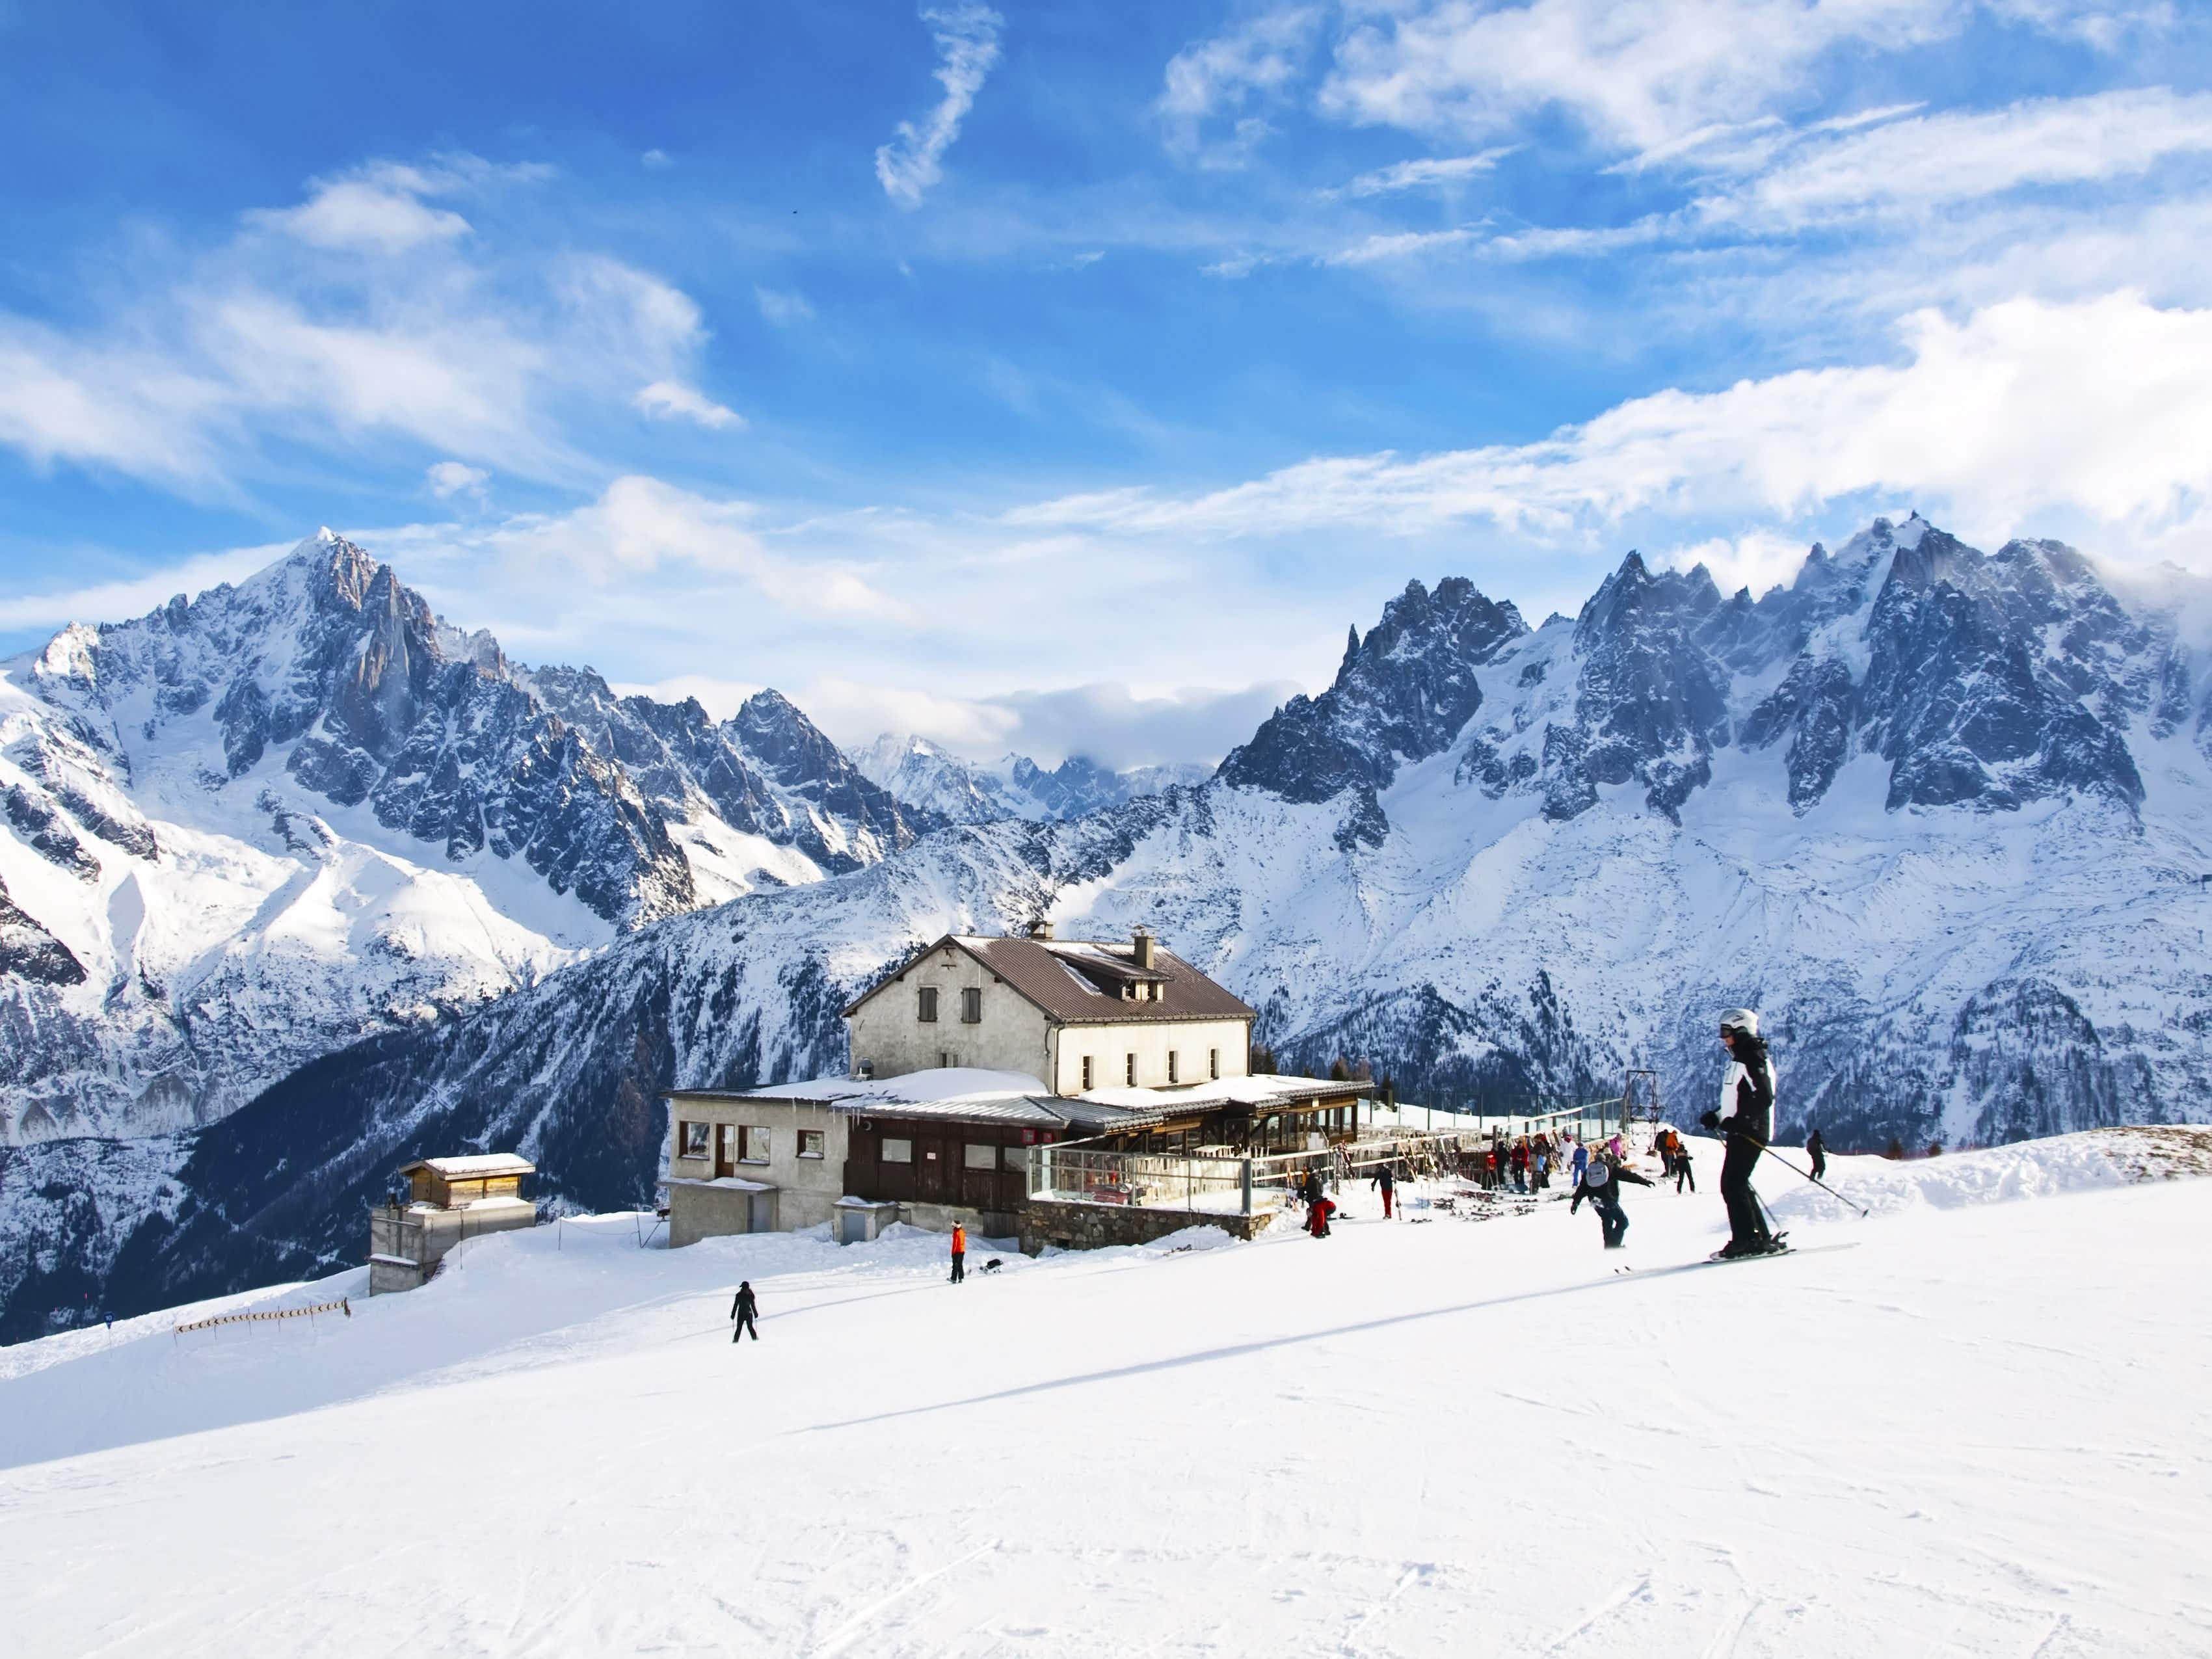 Time to get planning -  book a train from London straight to the French Alps for this winter